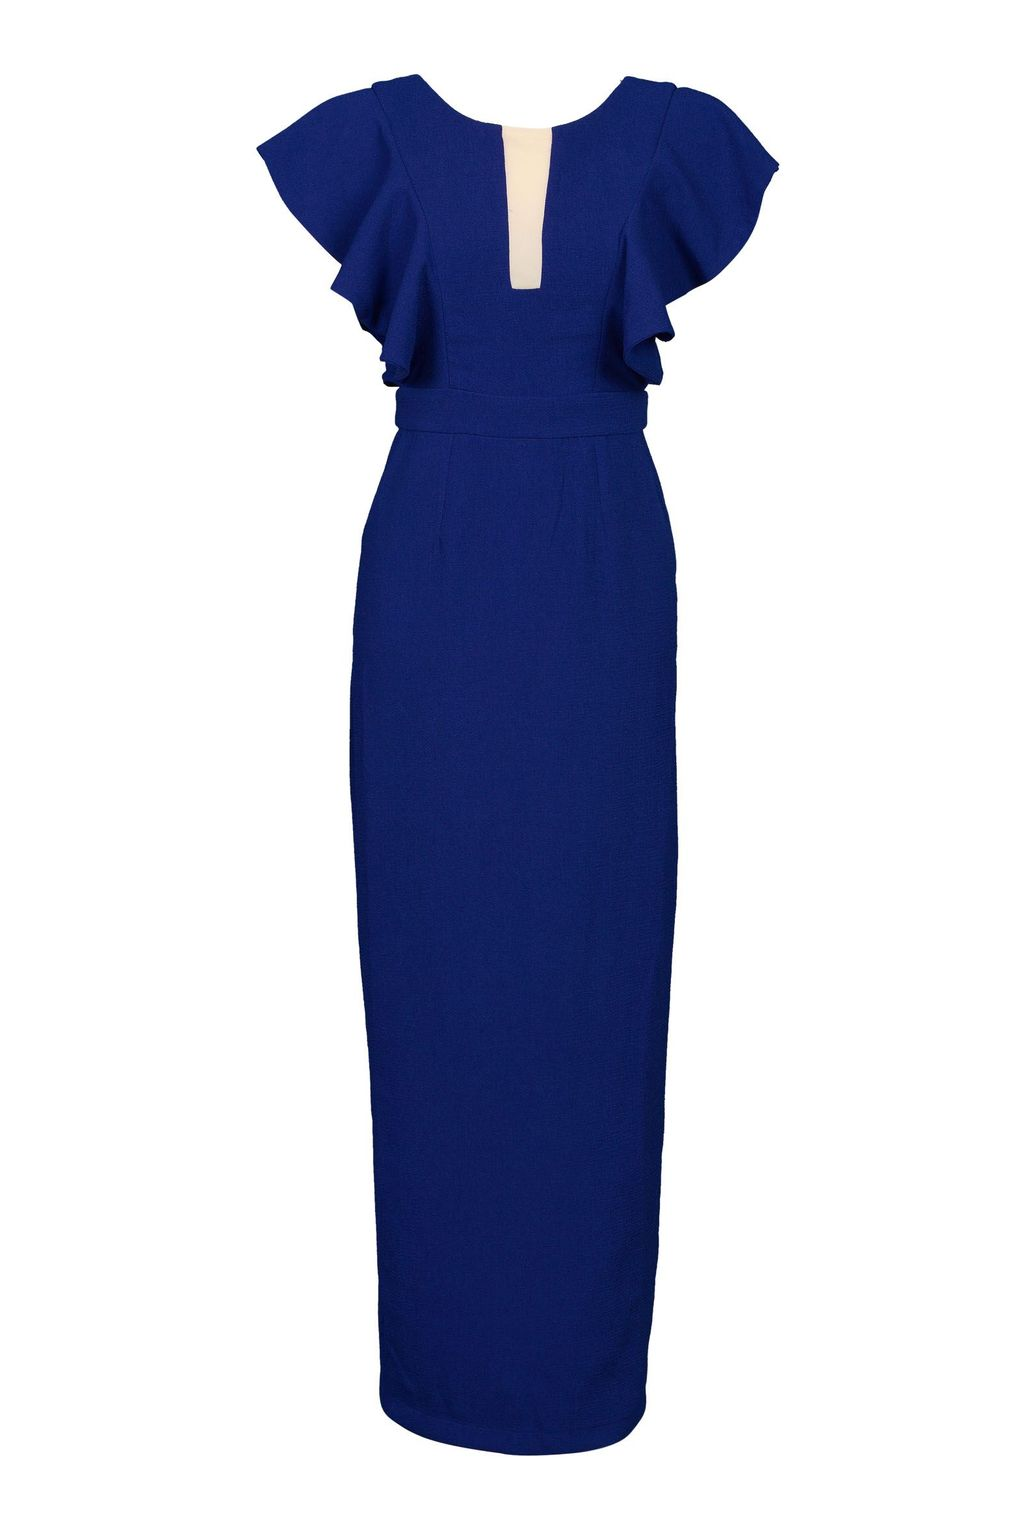 Ruffle Shoulder Crepe Dress, Royal Blue - neckline: round neck; sleeve style: angel/waterfall; pattern: plain; style: maxi dress; length: ankle length; predominant colour: royal blue; occasions: evening; fit: body skimming; fibres: polyester/polyamide - stretch; sleeve length: short sleeve; pattern type: fabric; texture group: jersey - stretchy/drapey; season: a/w 2015